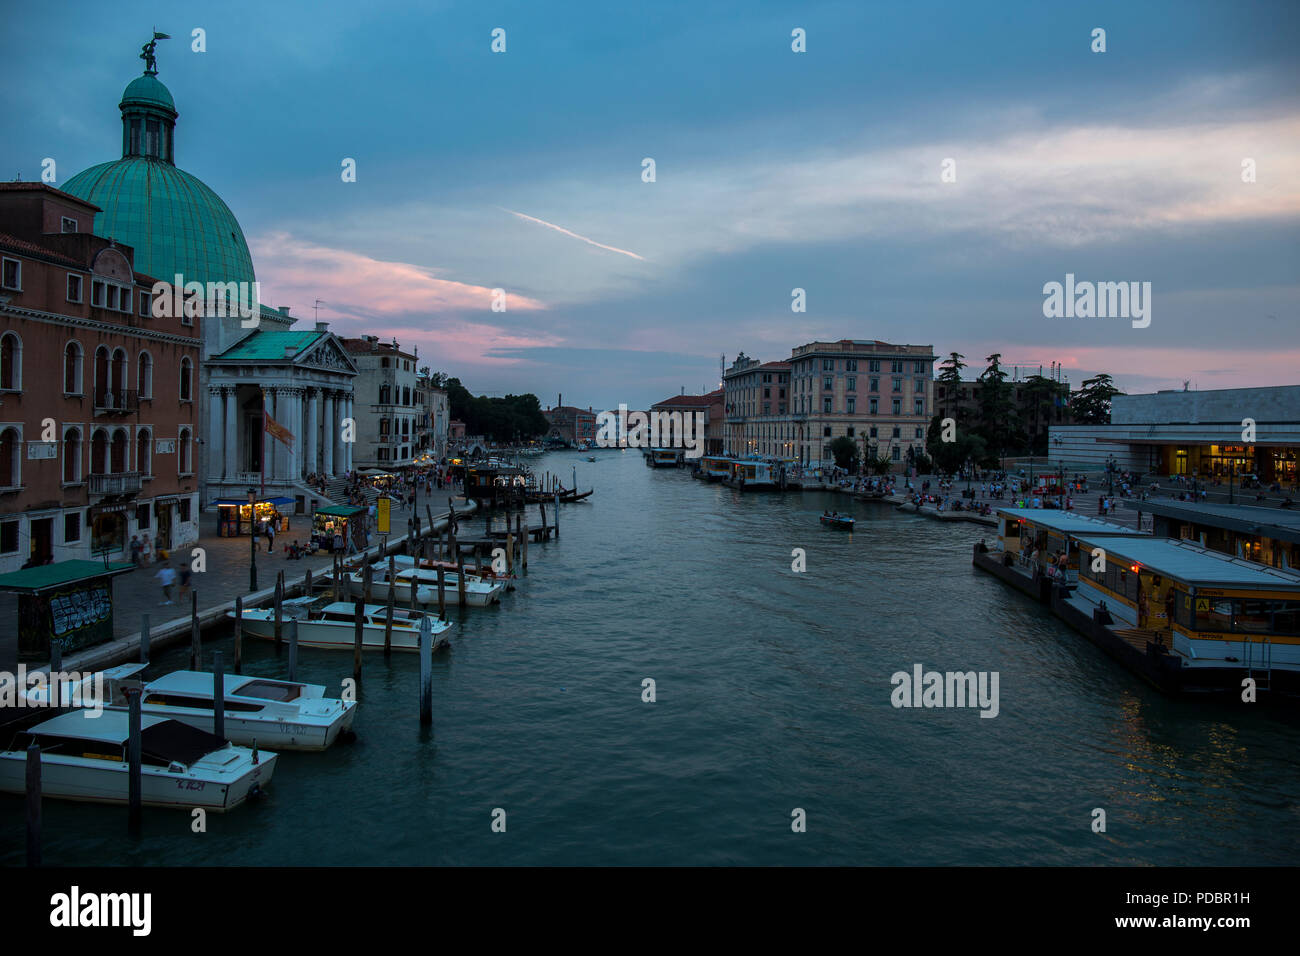 View from the Bridge - Ponte Degli Scalzi on the Grand Canal near the railway station in Venice Stock Photo